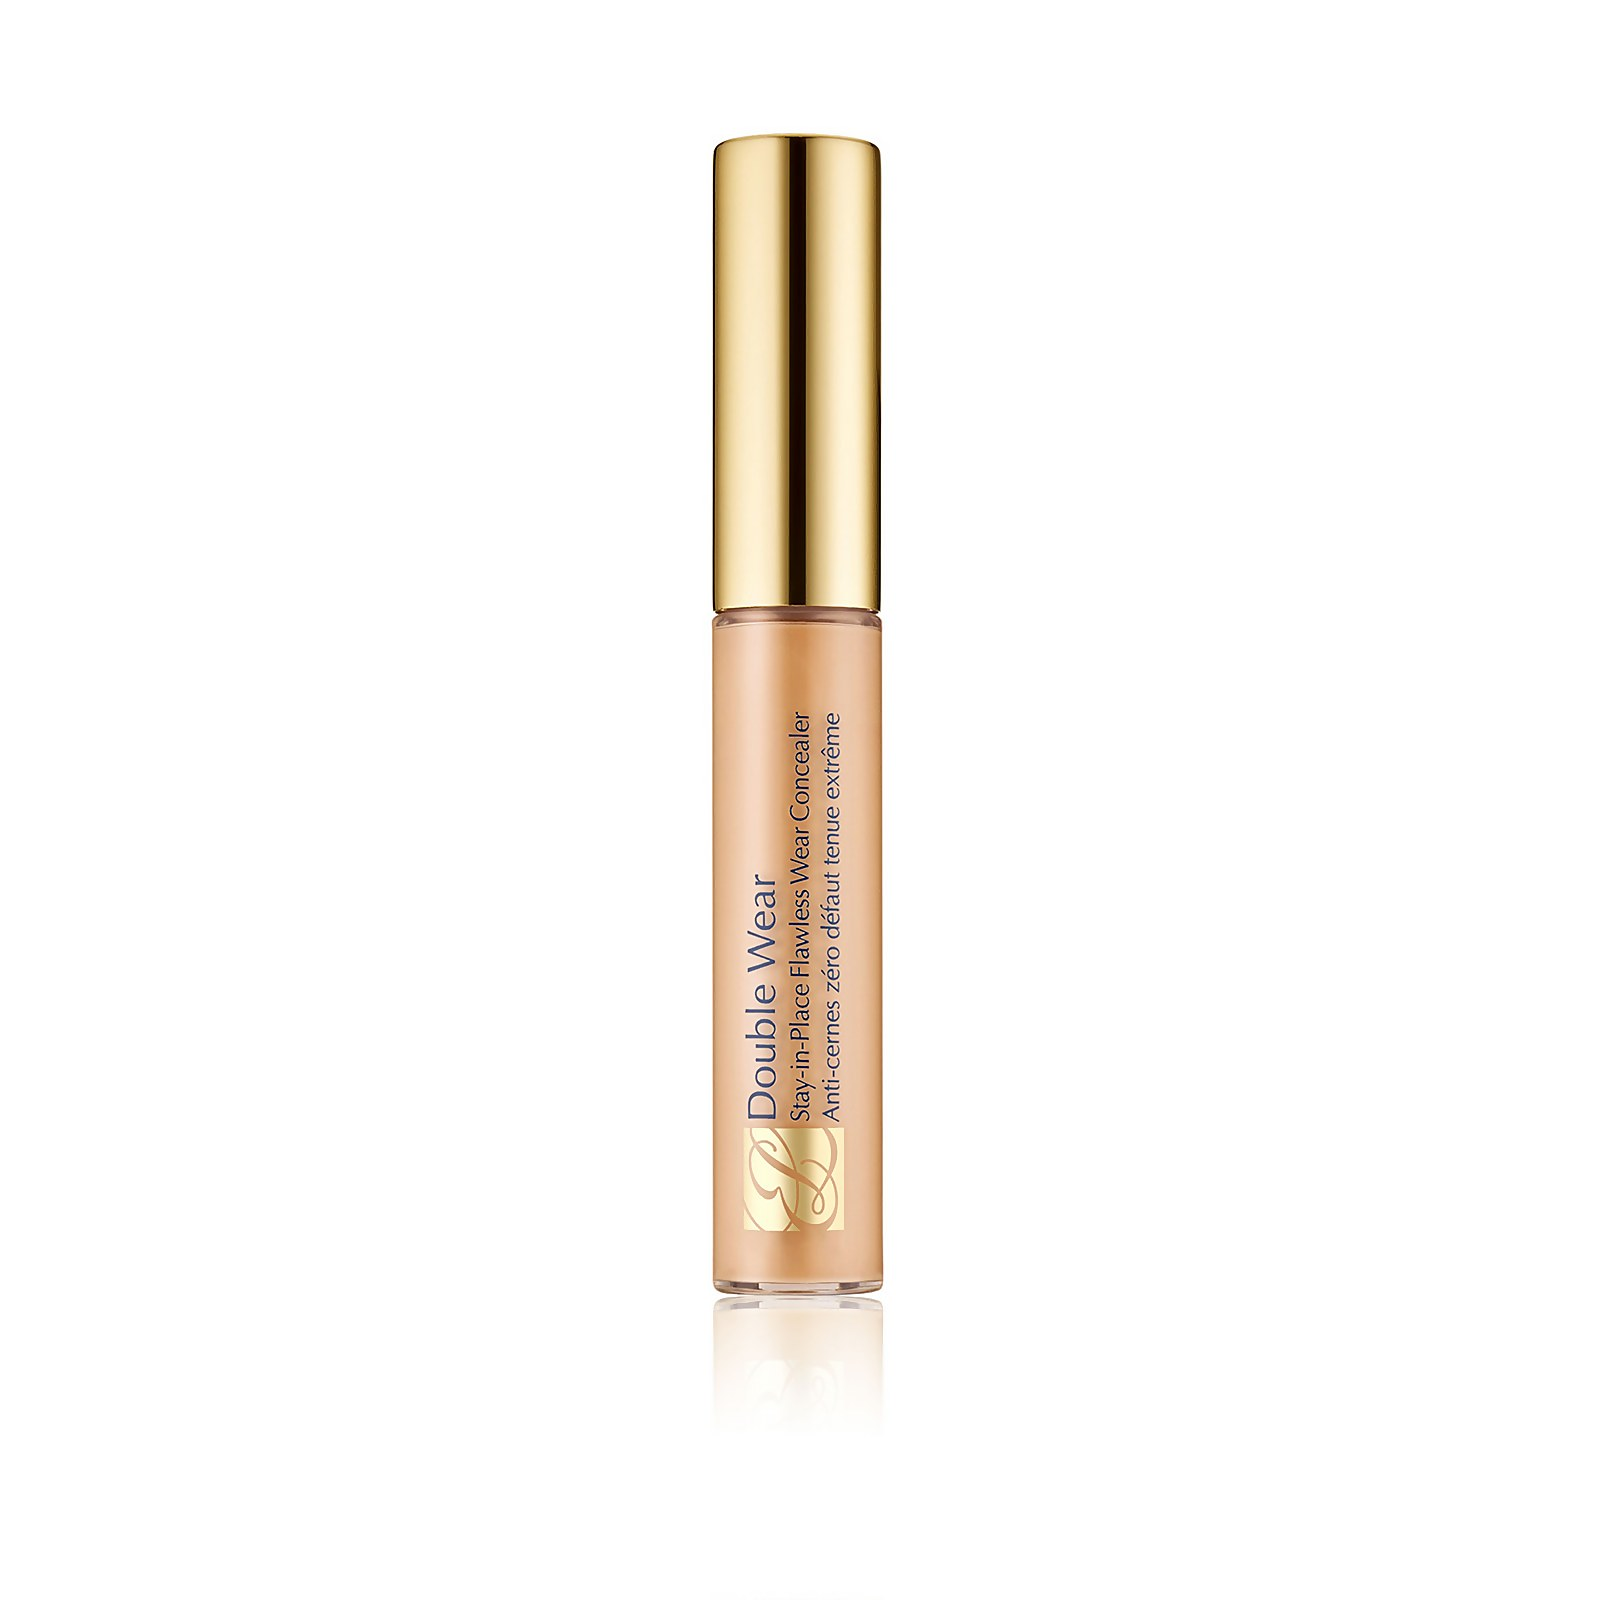 Estée Lauder Double Wear Stay-in-Place Flawless Wear Concealer 7ml (Various Shades) - 2C Light Medium